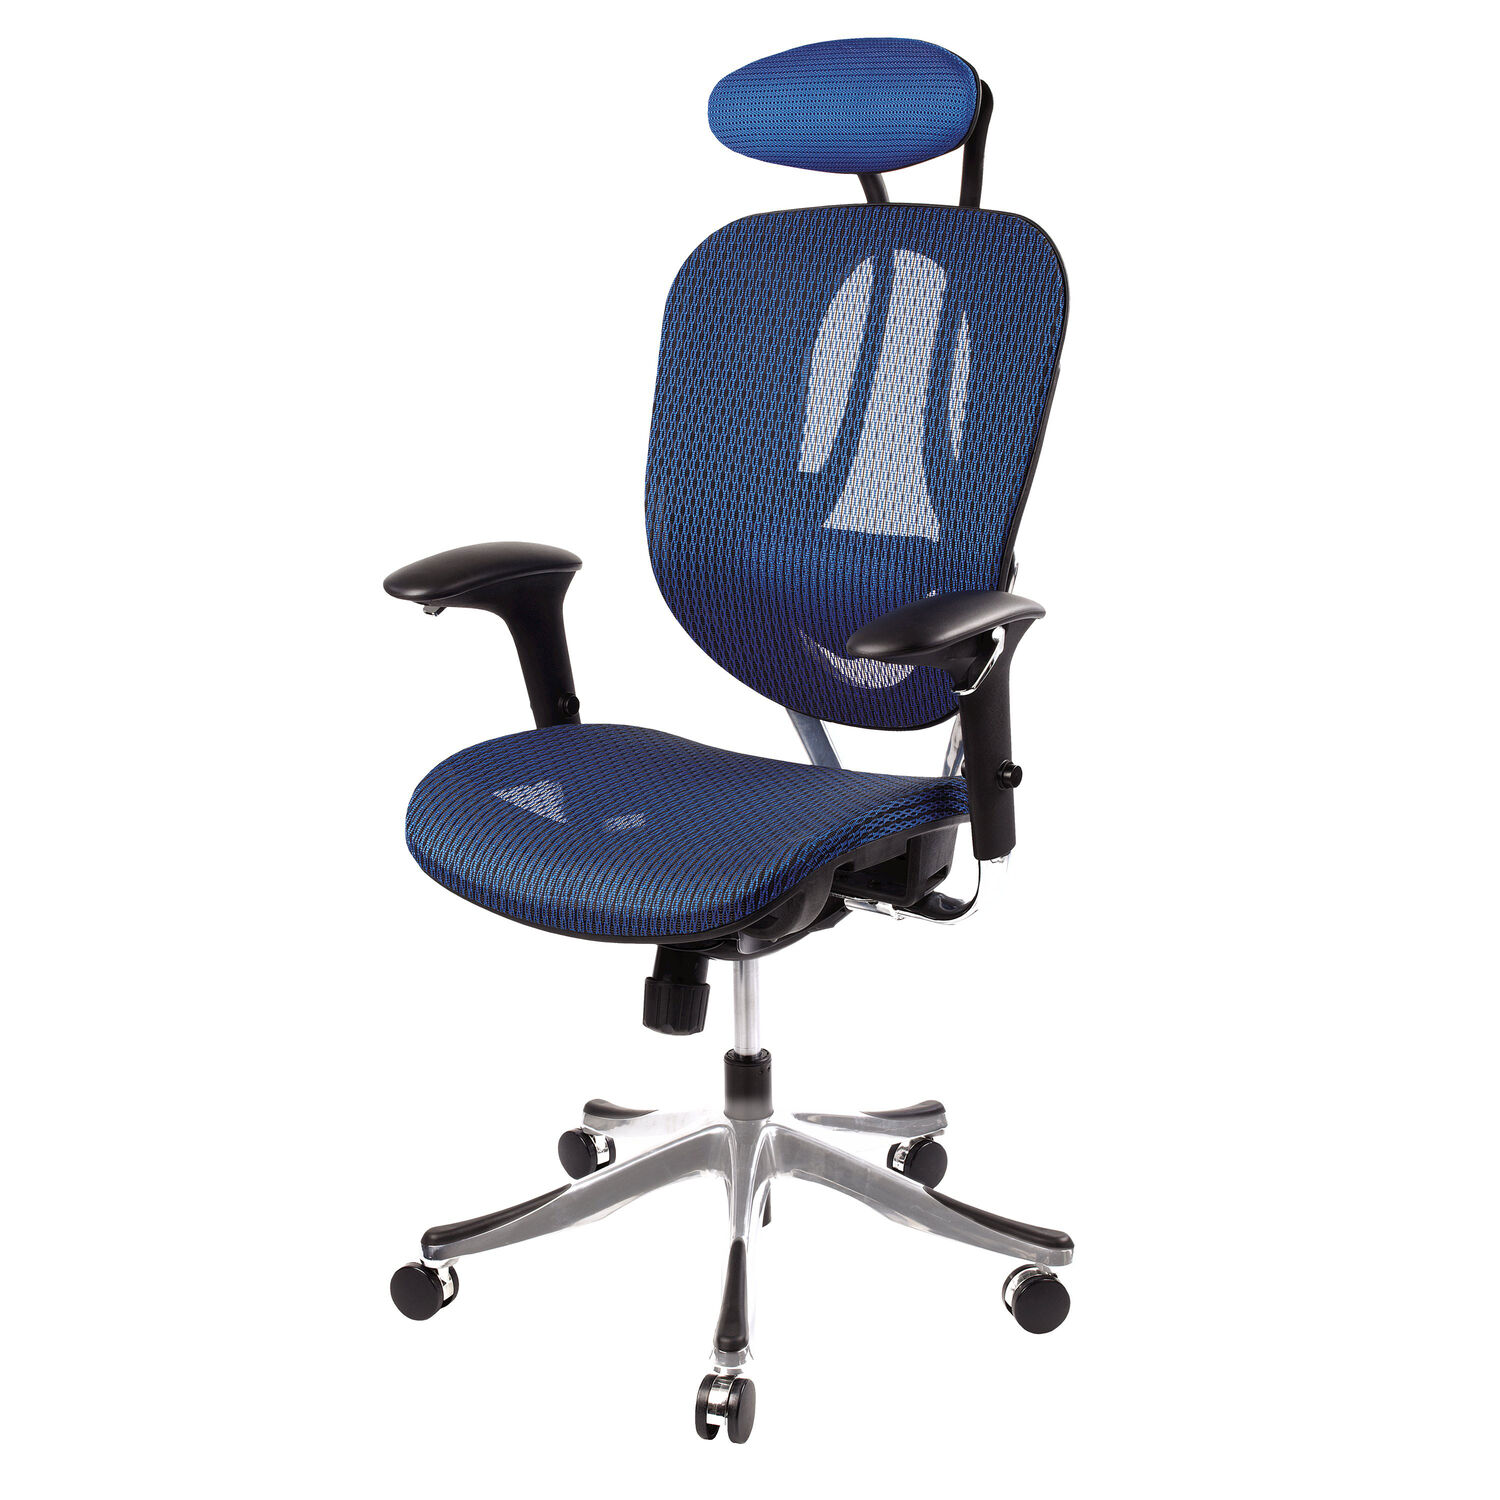 Samsonite Zurich Mesh Office Chair In The Color Blue